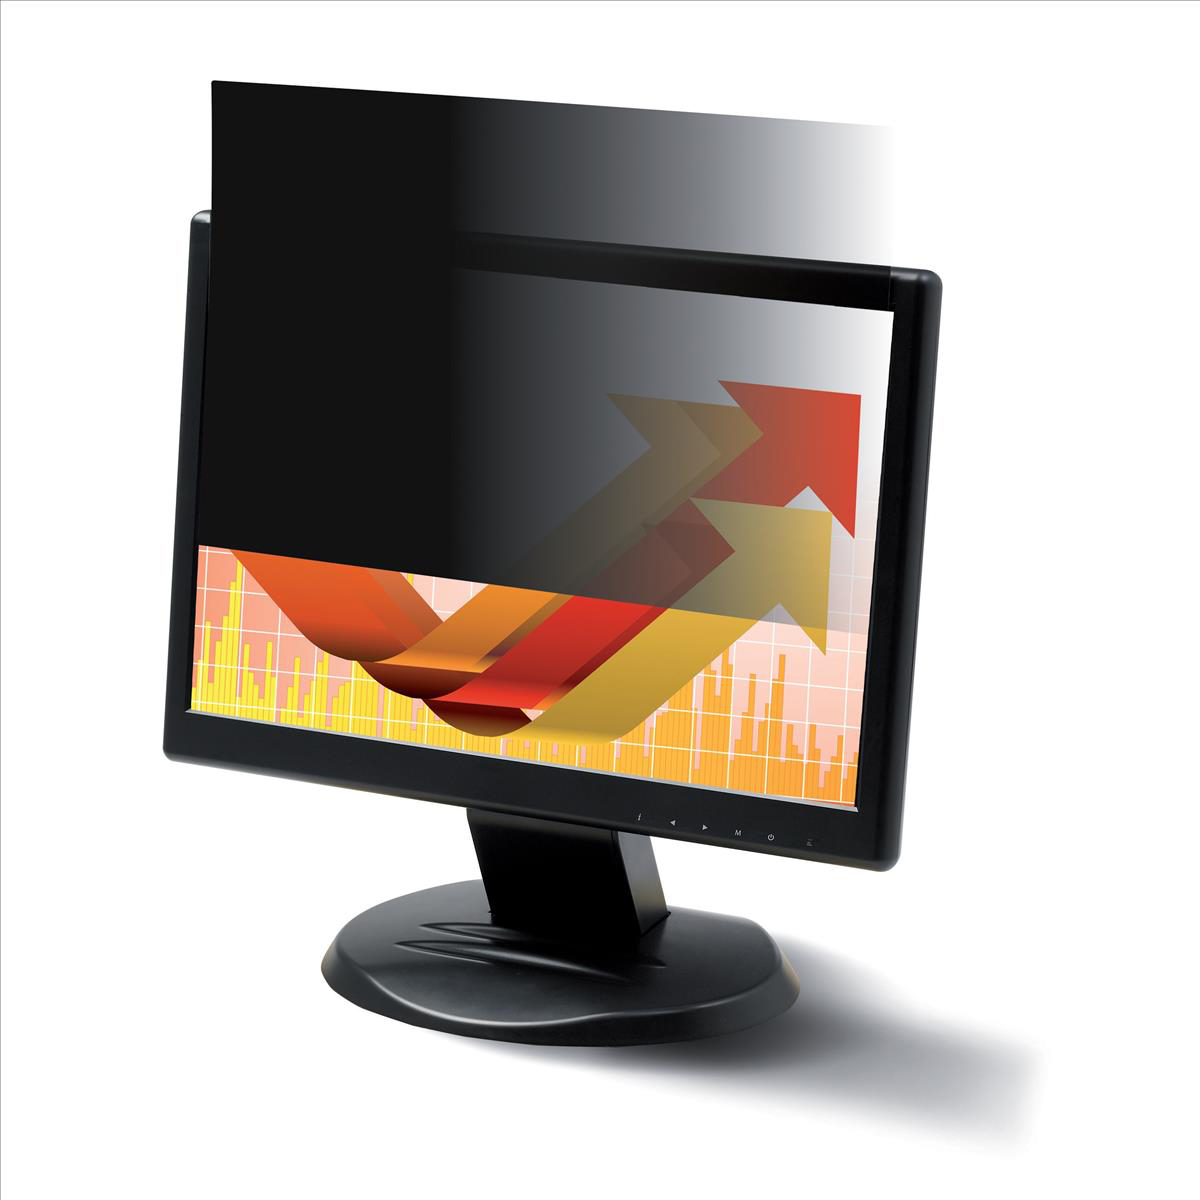 Desktop 3M Privacy Filter - 24 inch Widescreen 16:9 - PF24.0W9